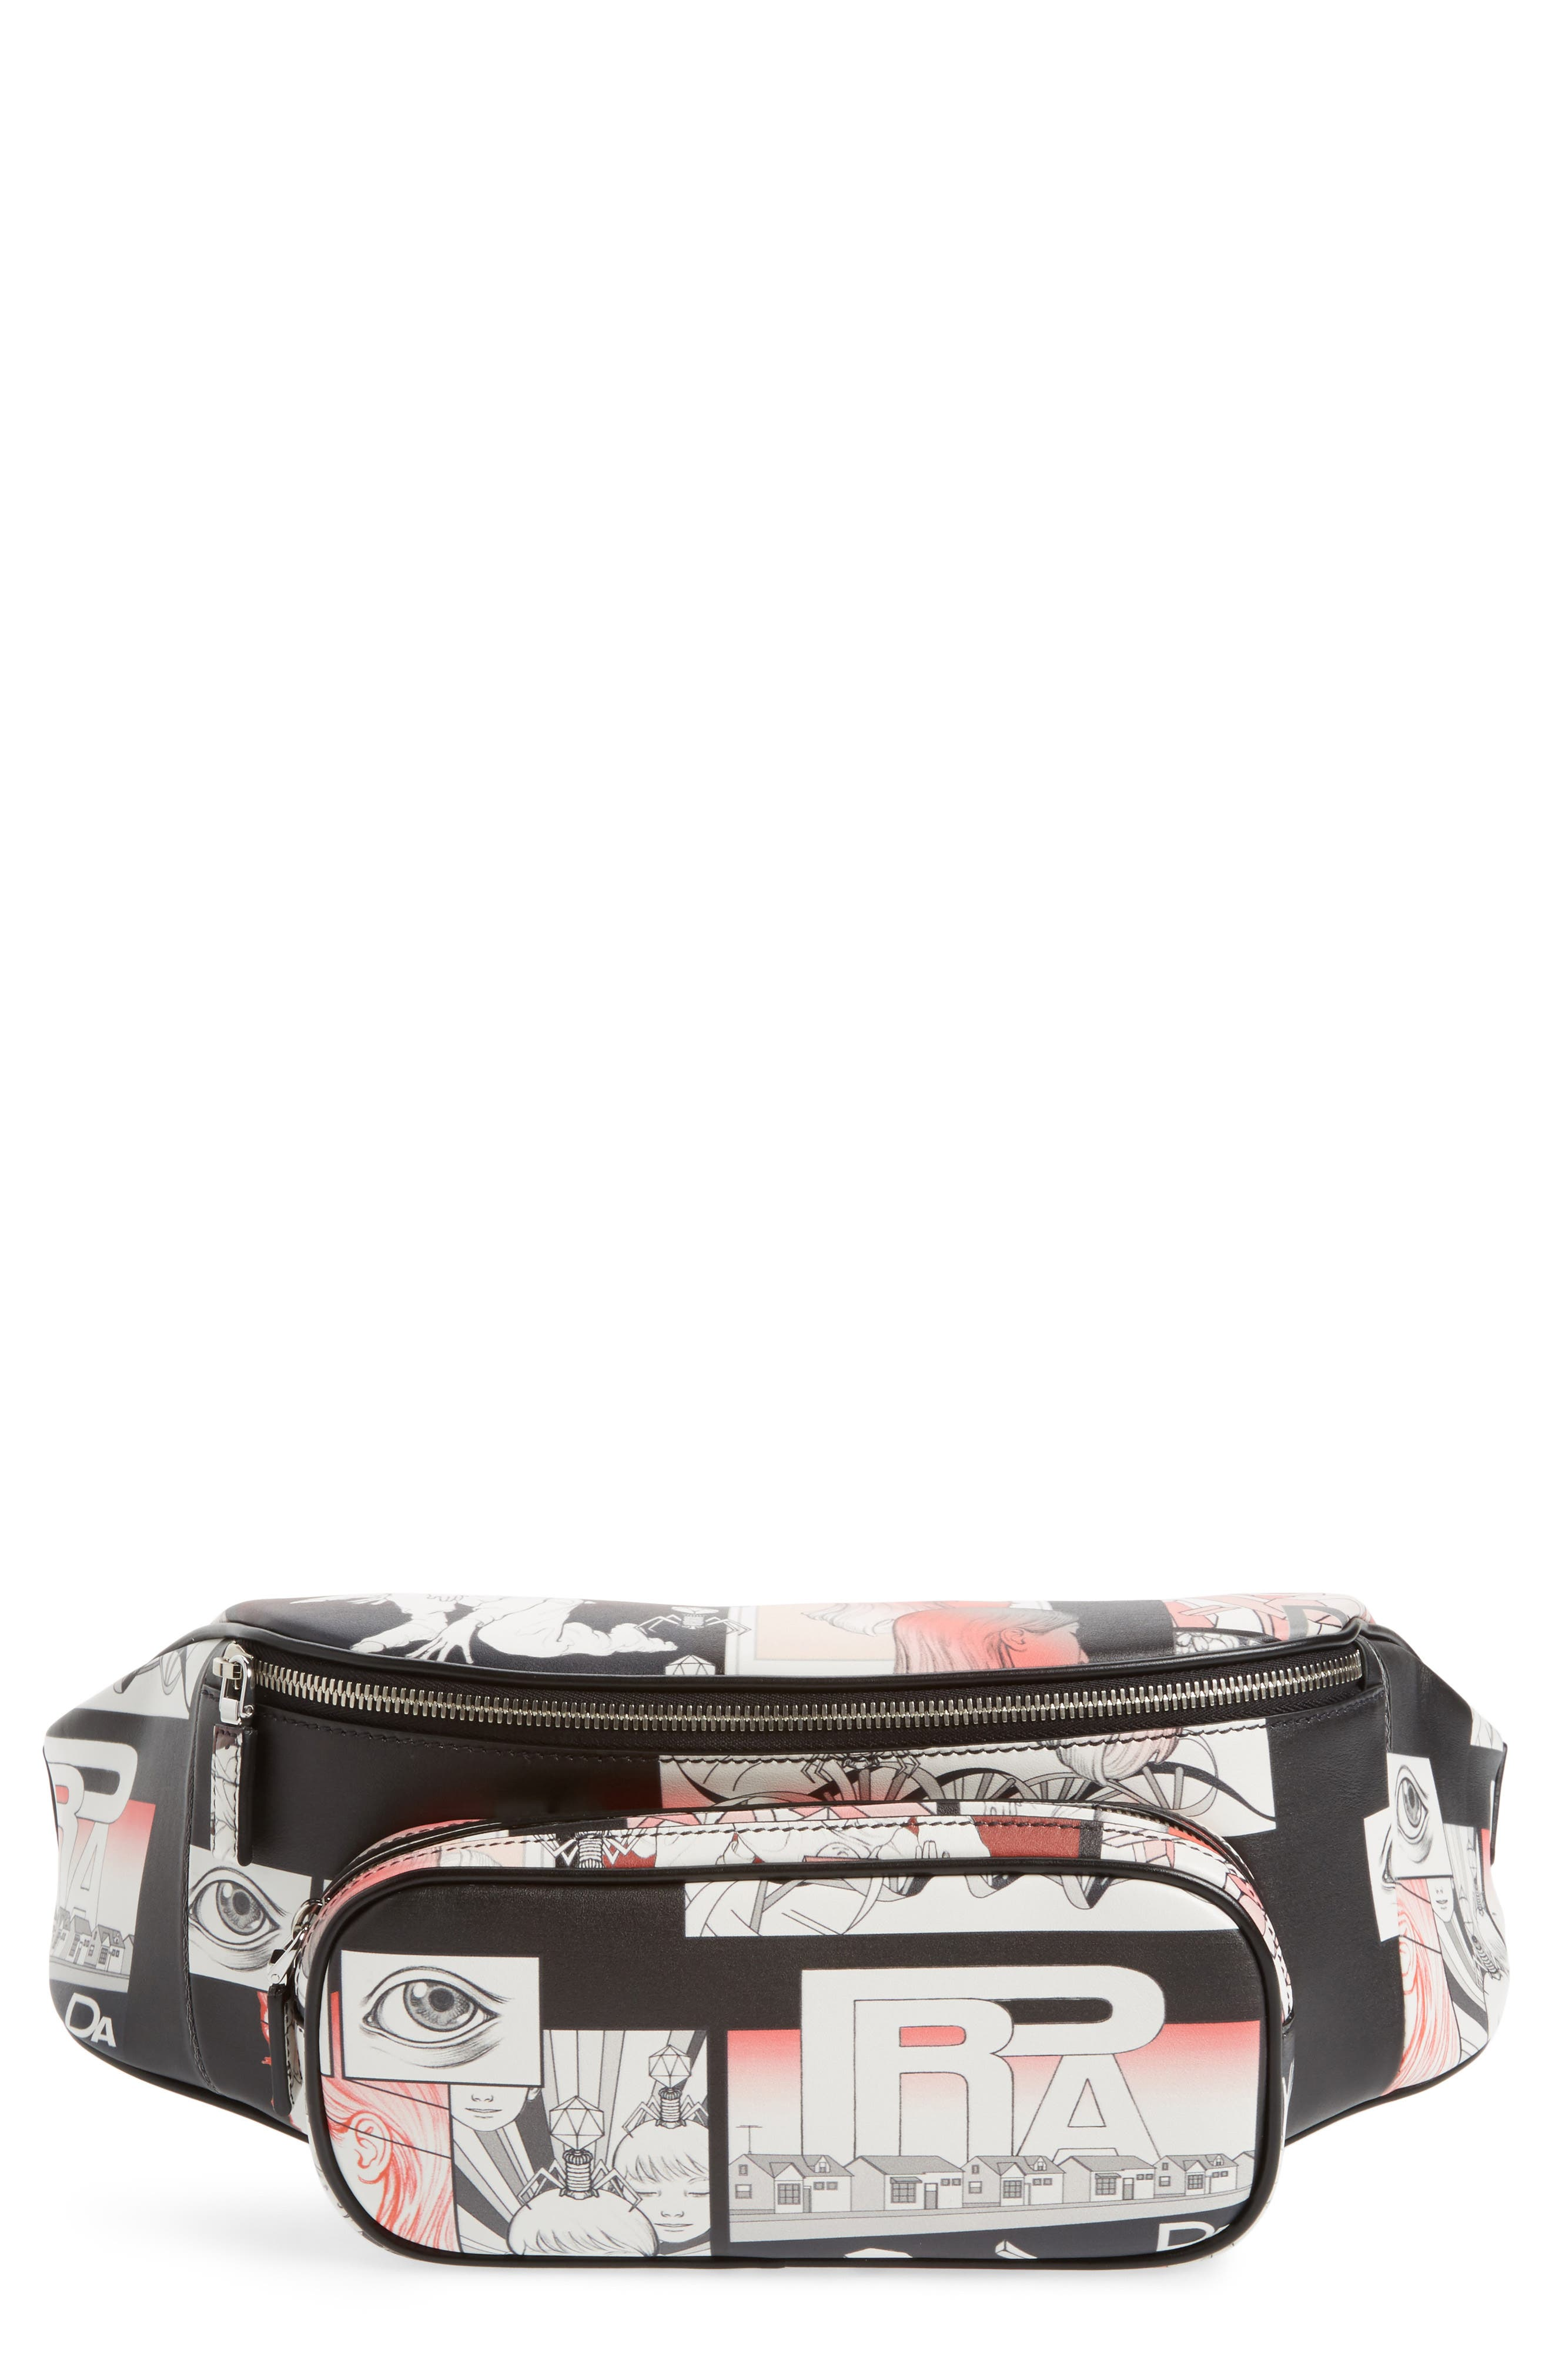 d41fff7cd9c663 Prada Comic Print Hip Pack on sale at Nordstrom for $1037.98 was ...